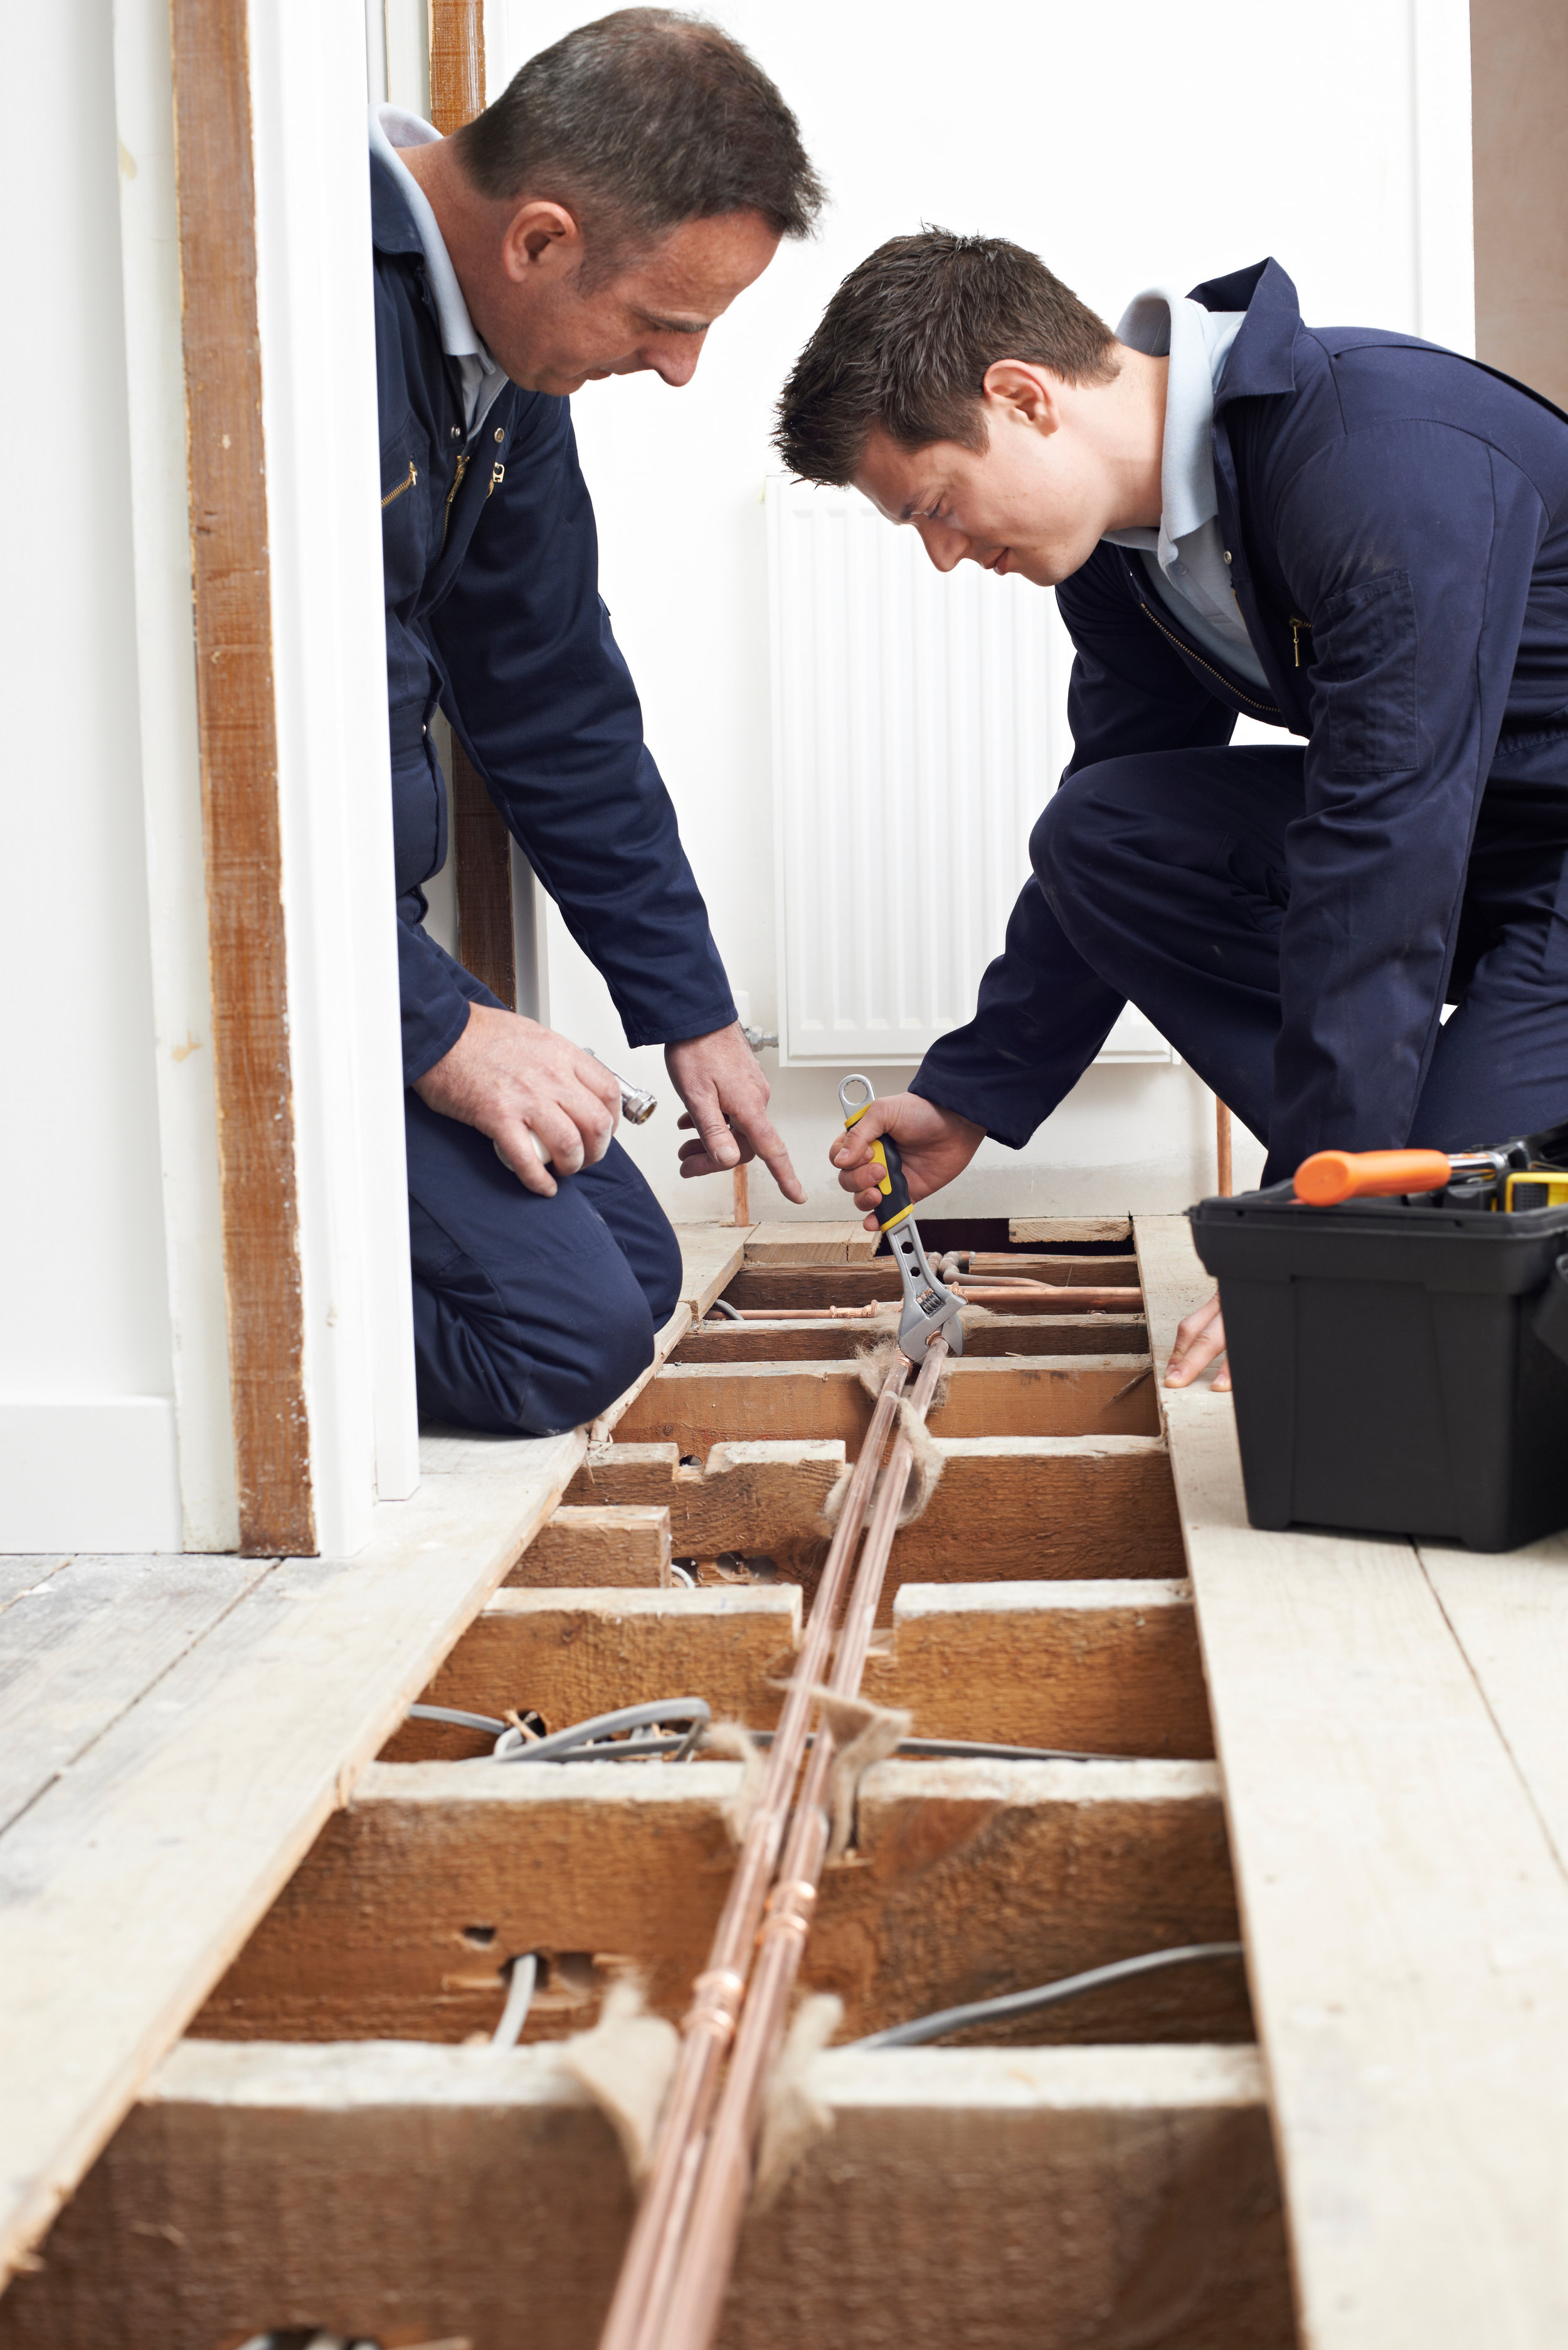 Canva - Plumber And Apprentice Fitting Central Heating in House.jpg